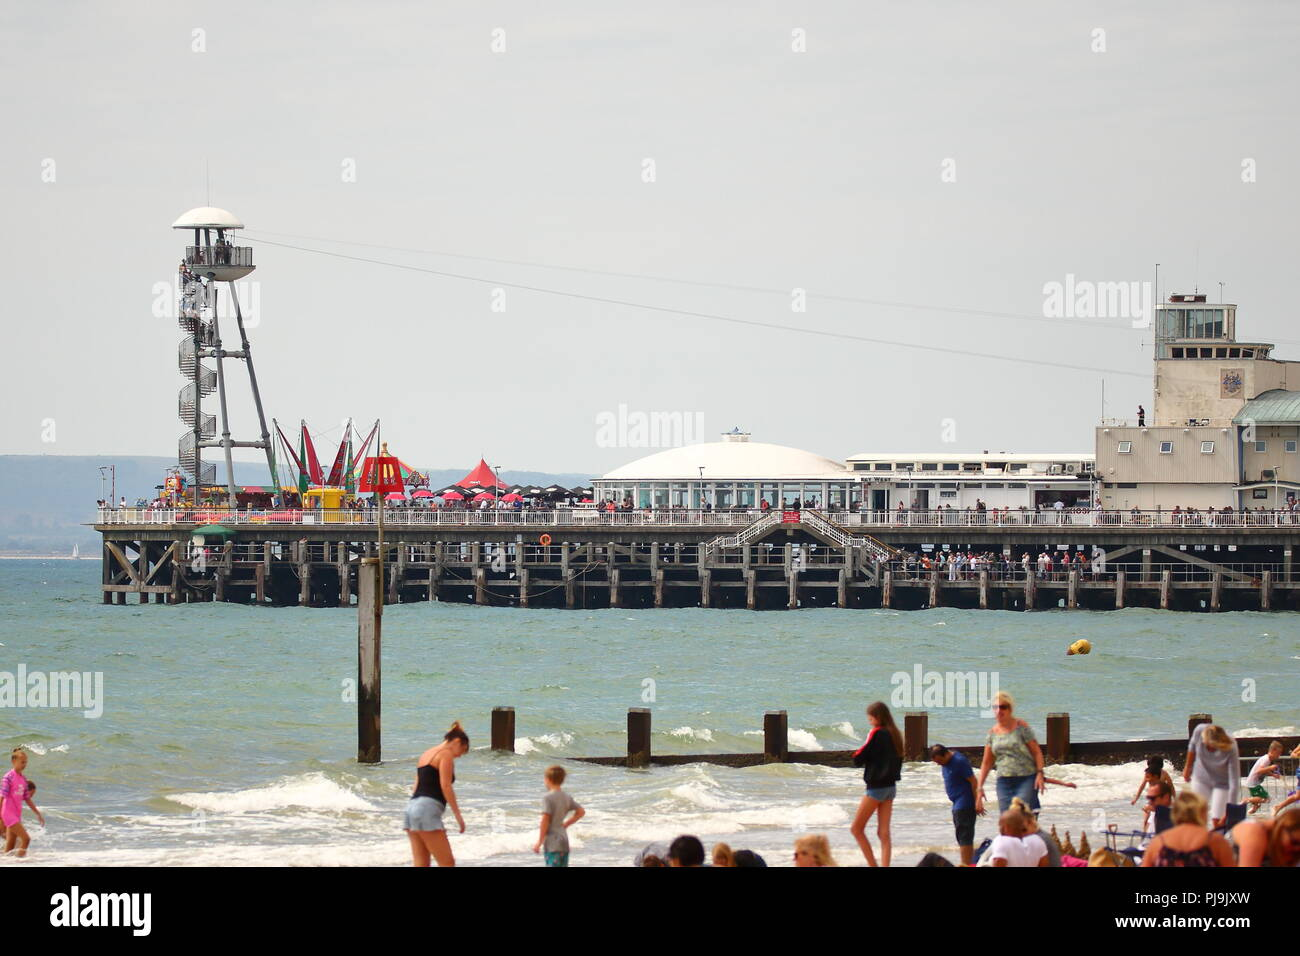 The pier at the Bournemouth Air Festival 2018, Bournemouth, UK - Stock Image